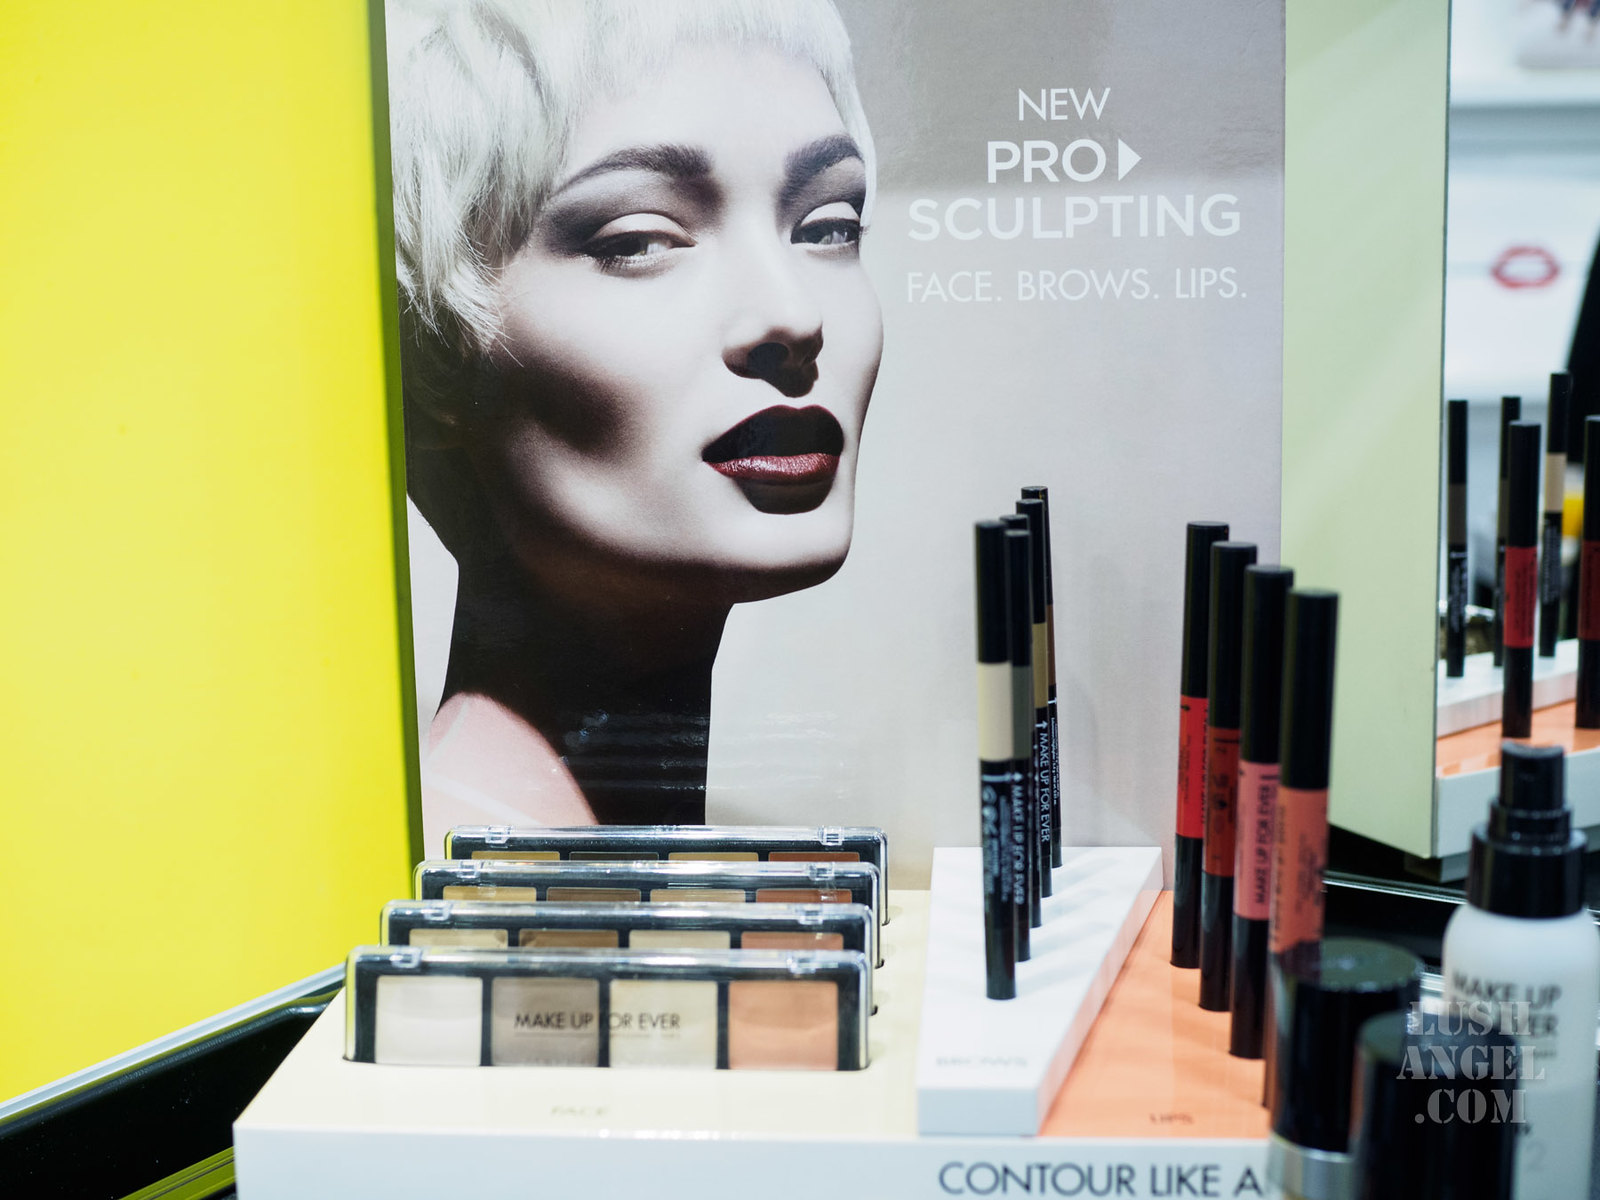 make-up-for-ever-pro-sculpting